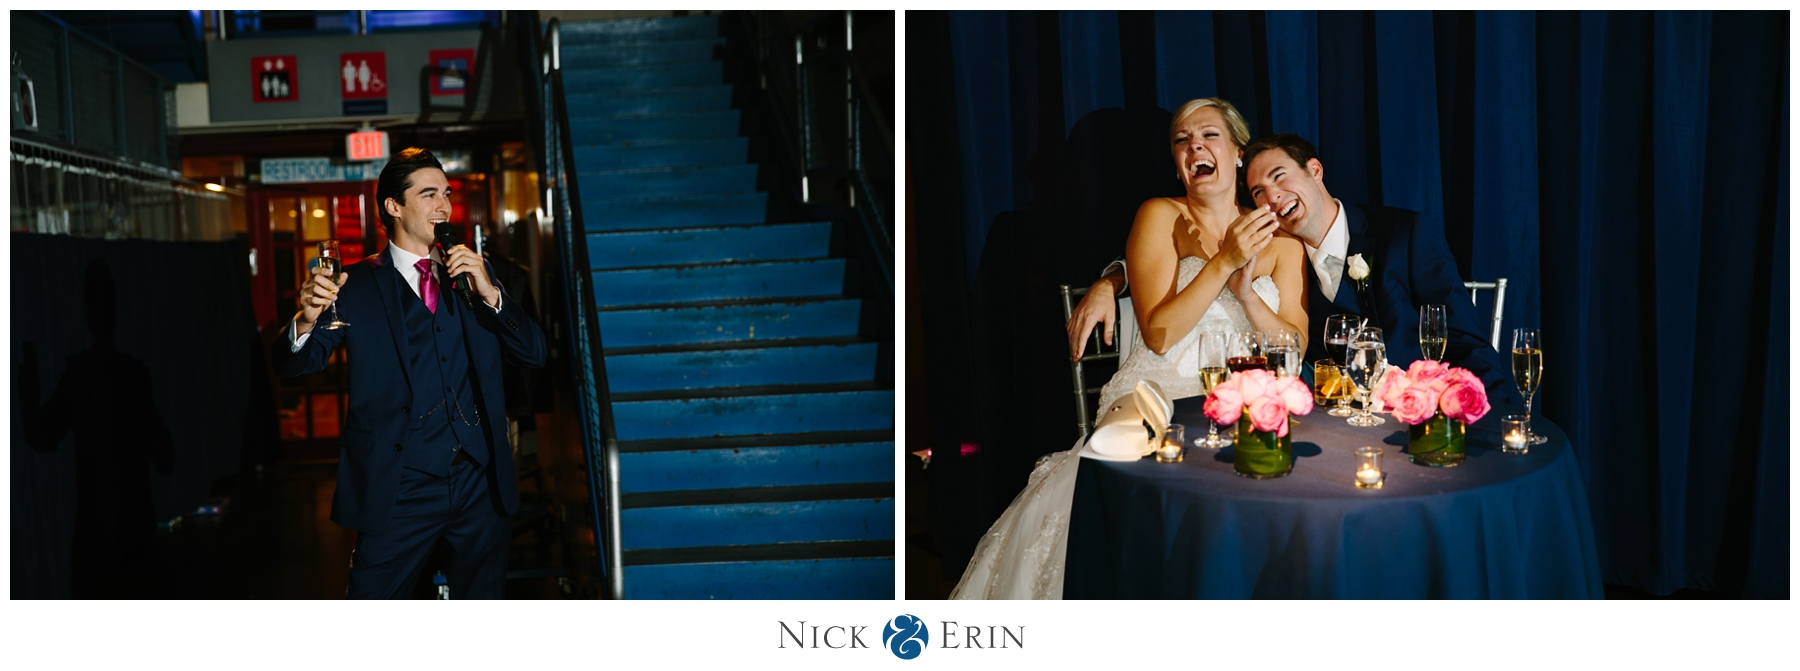 Donner_Photography_Torpedo Factory Wedding_Courtney and Scott_0052